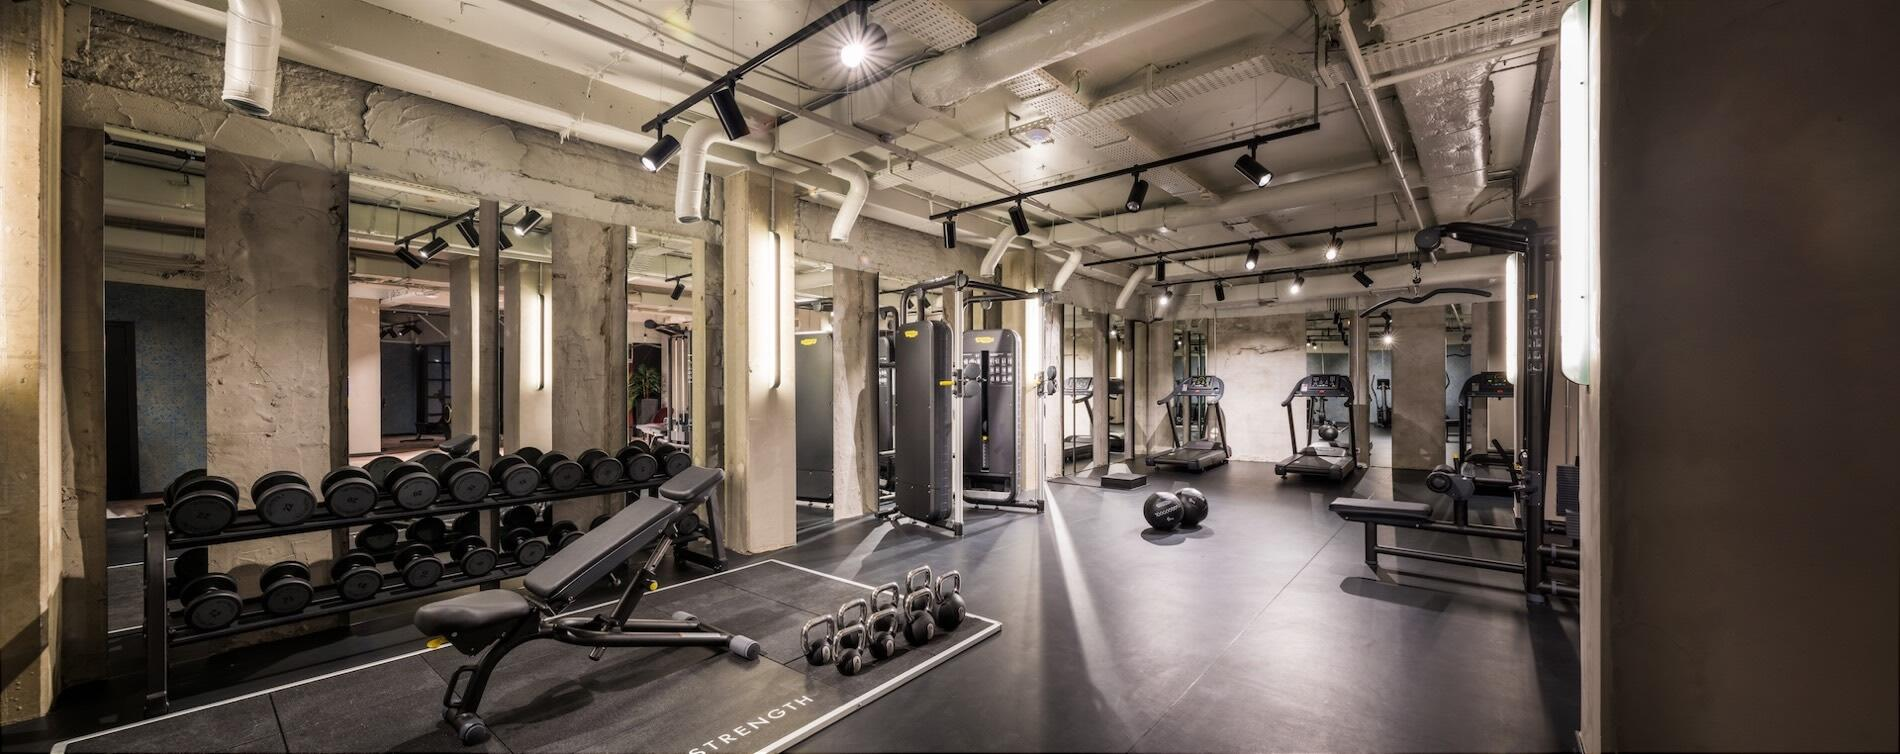 Gym at Hotel Hubert Brussels near Grand Place